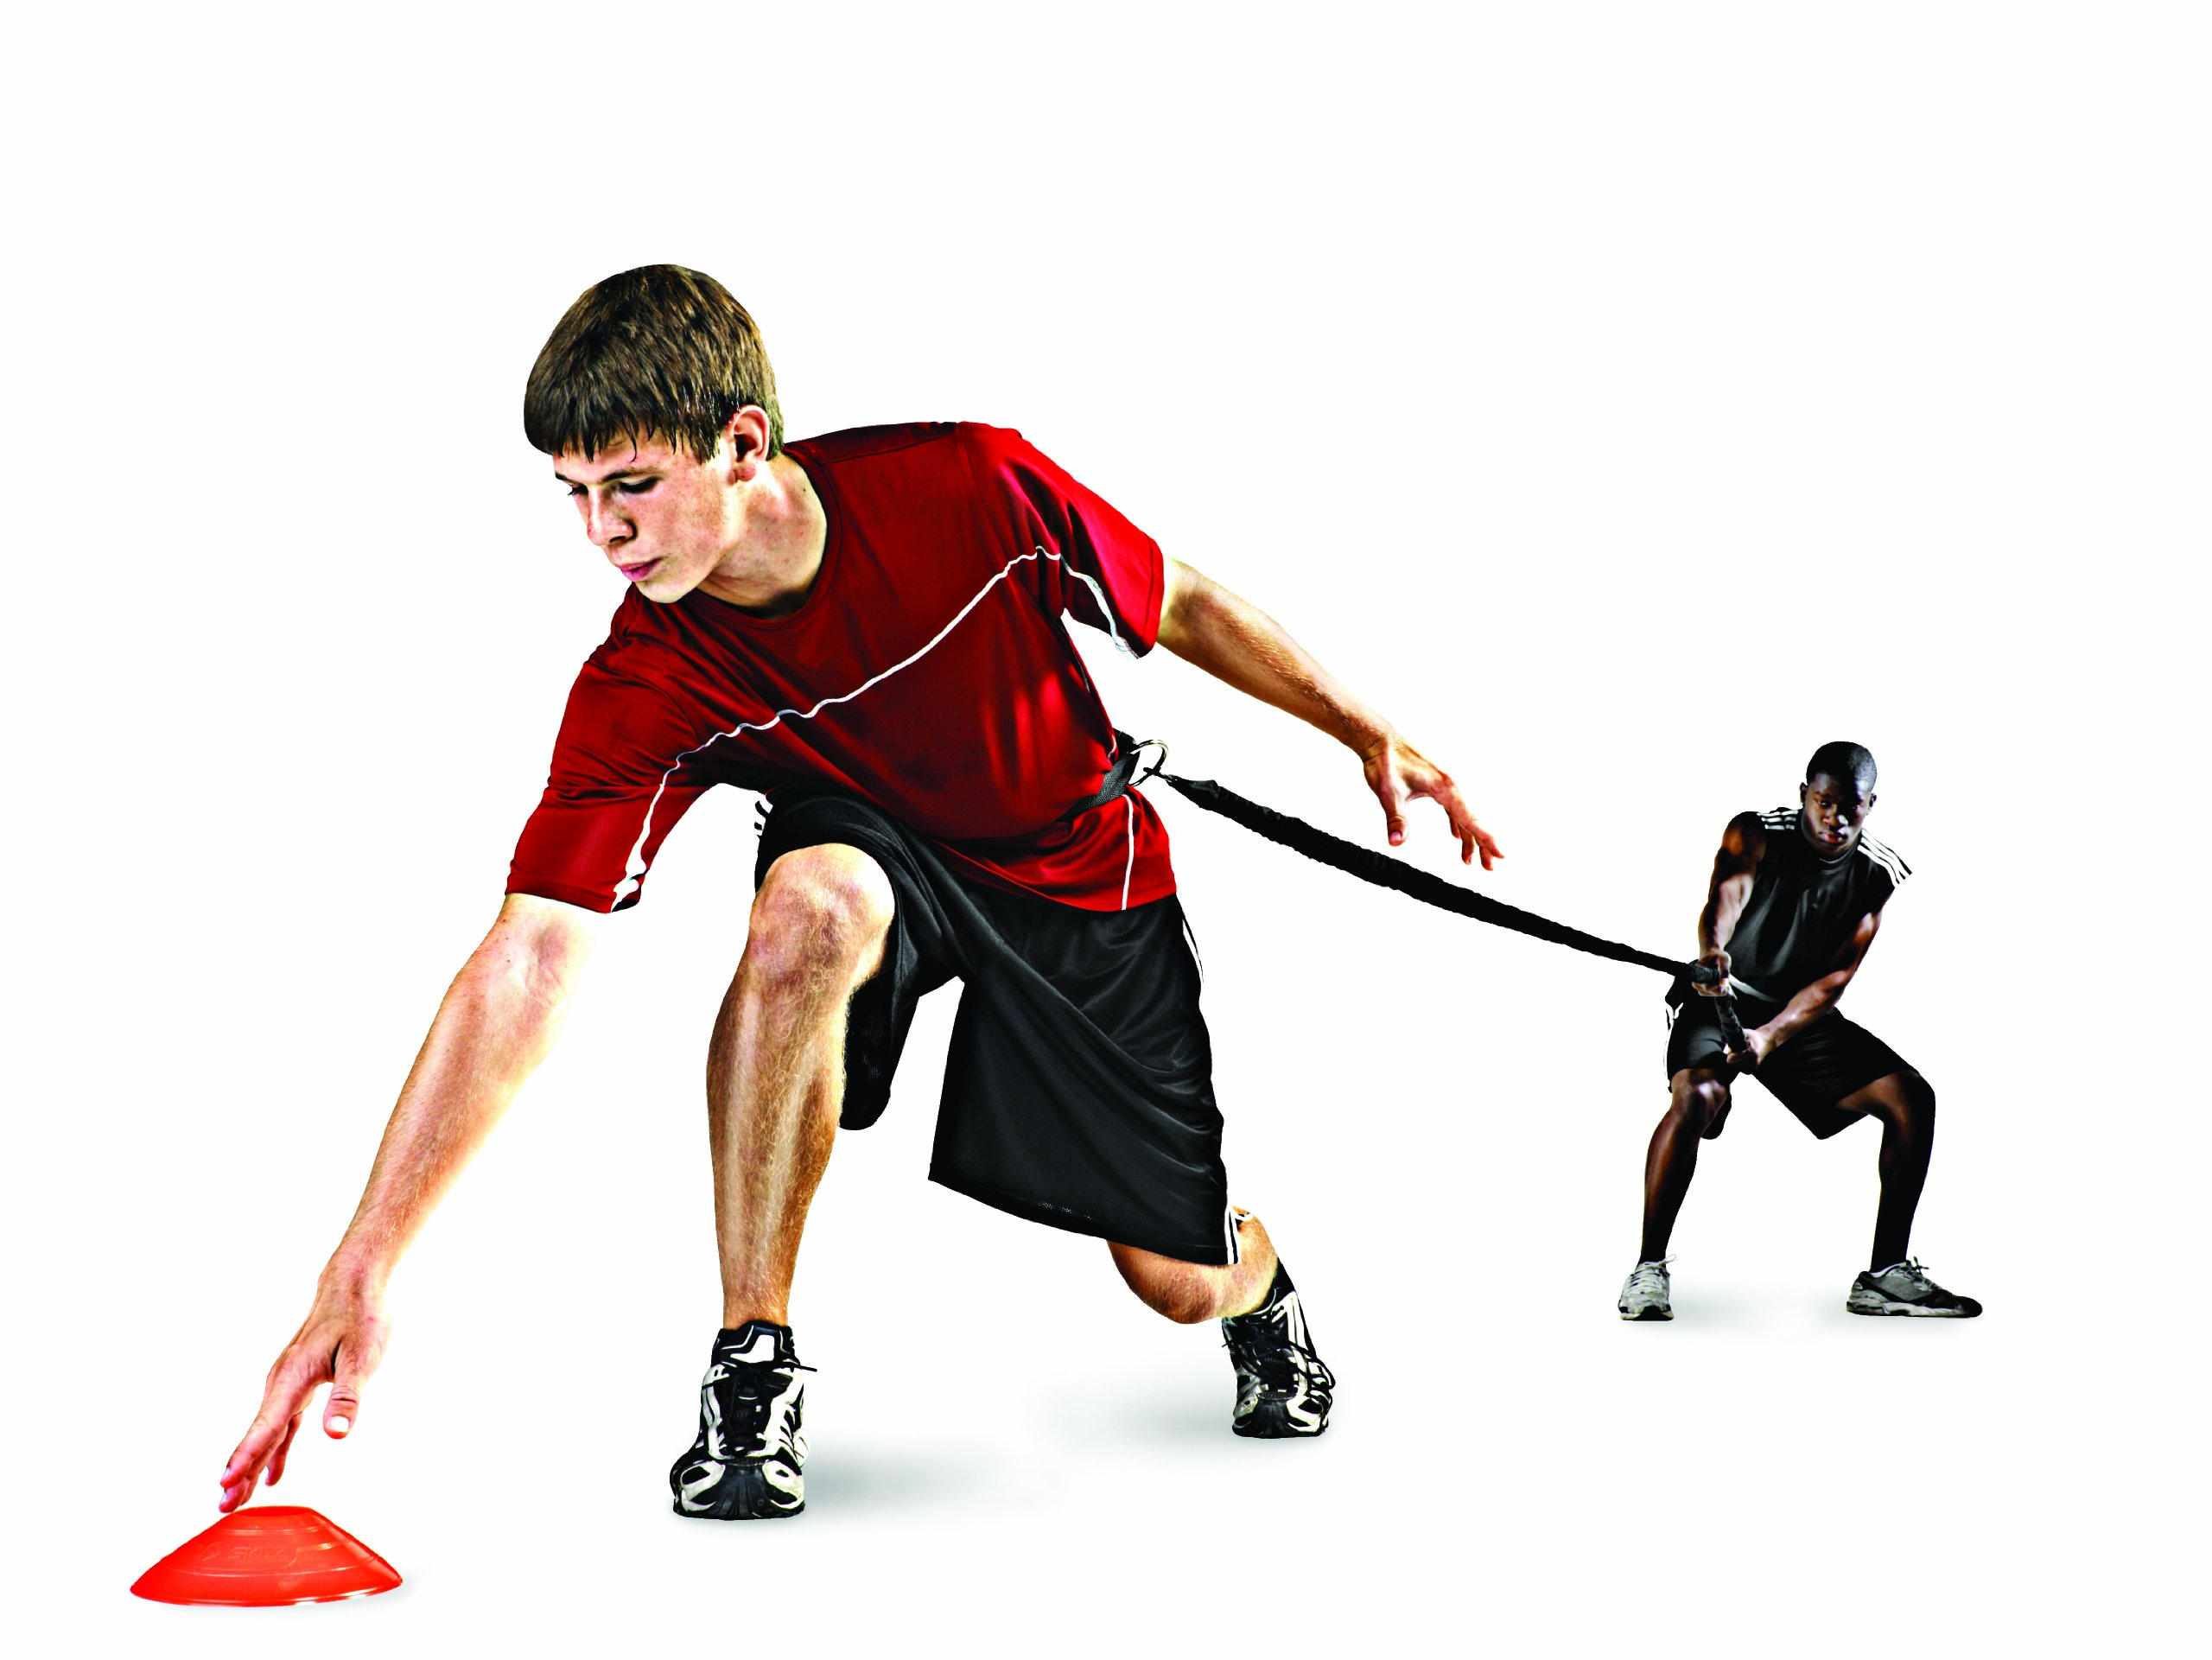 SKLZ Recoil 360, Dynamic Resistance and Assistance Trainer. Multi-Sport, Solo or Partner Belt with Bungee